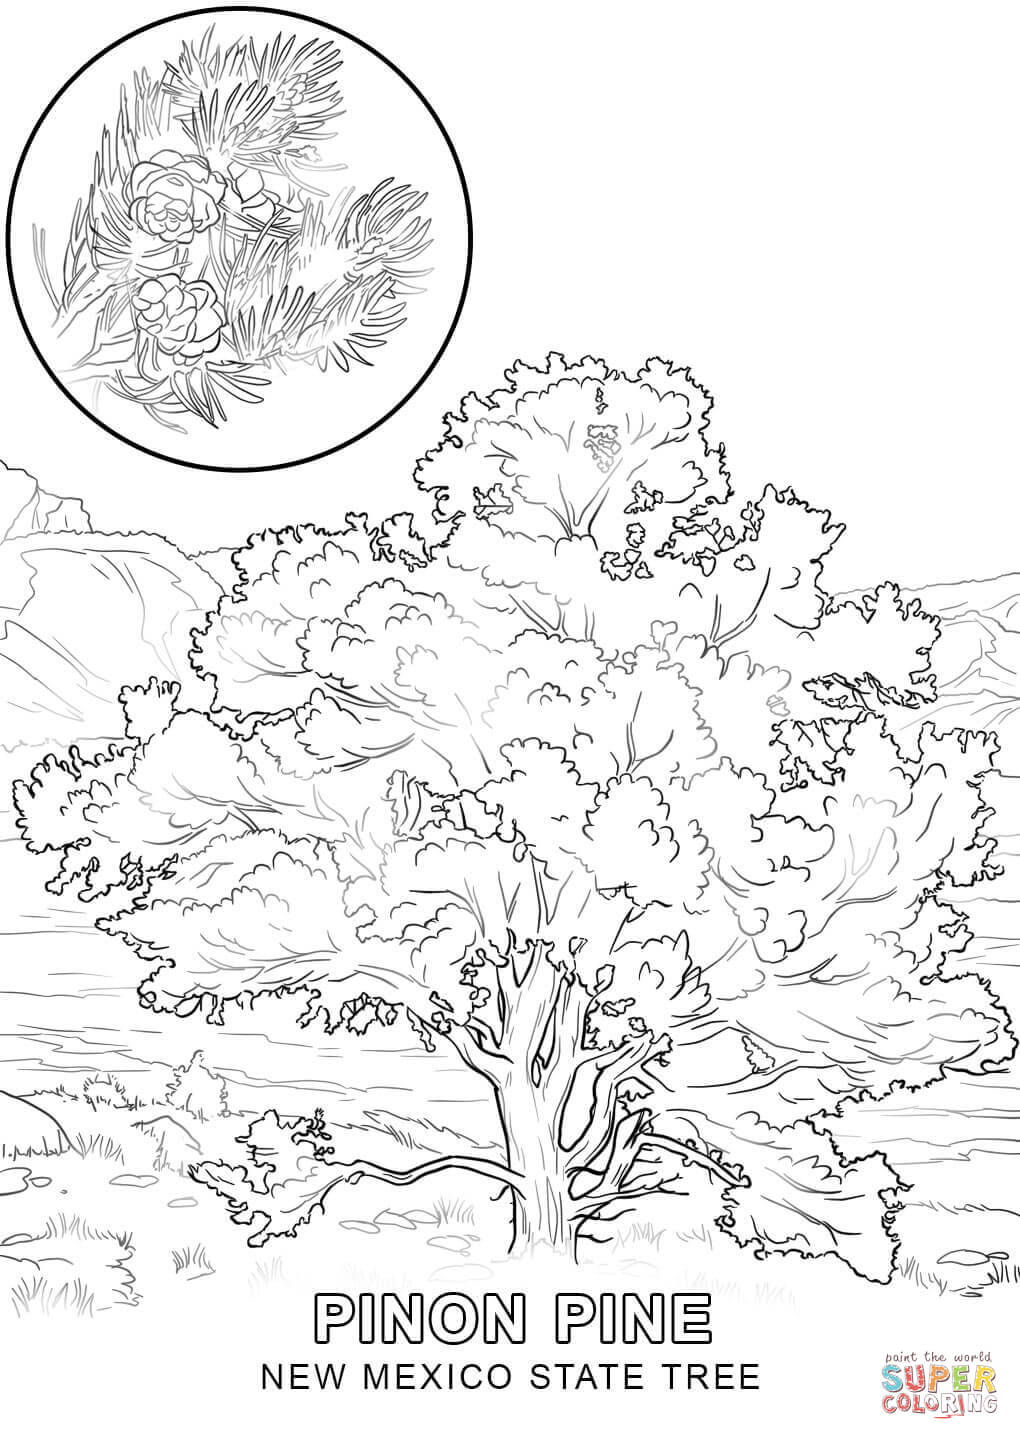 New Mexico Tree Coloring Page - Coloring Home